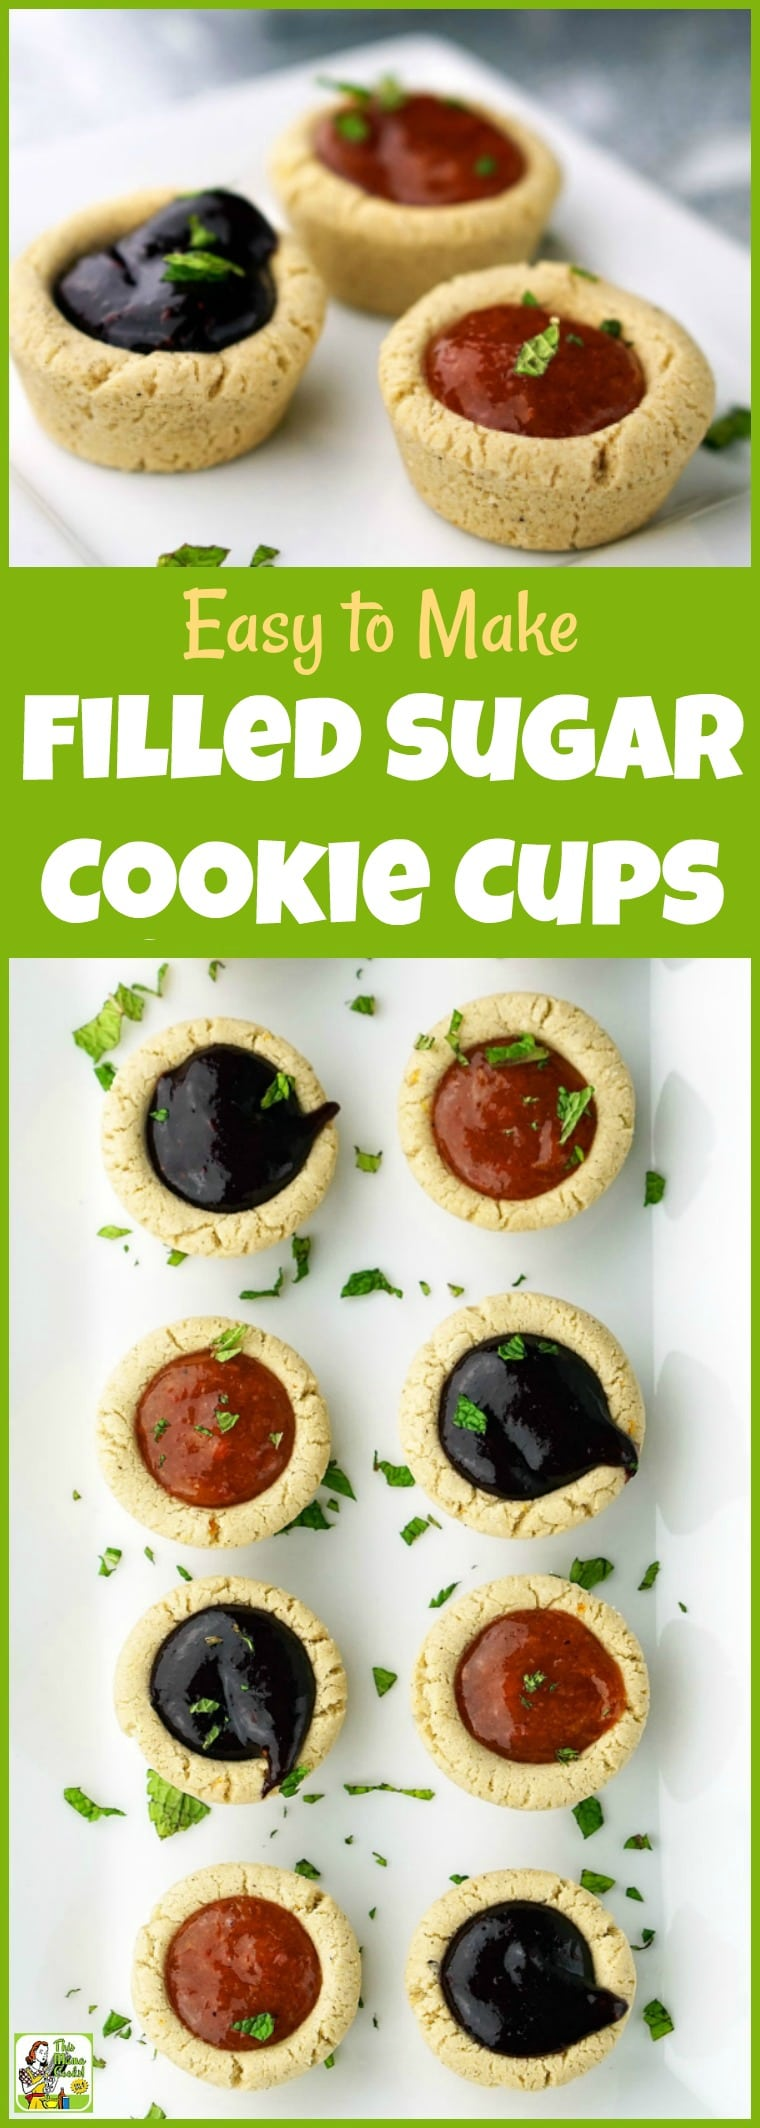 You\'ll love these Easy to Make Filled Sugar Cookie Cups with a gluten free option. Perfect for holiday cookie exchanges or Christmas parties. #recipe #easy #recipeoftheday #healthyrecipes #glutenfree #easyrecipes #cookies #Christmas #cookieexchanges #cookieswap #sugarcookies #glutenfreecookies #baking